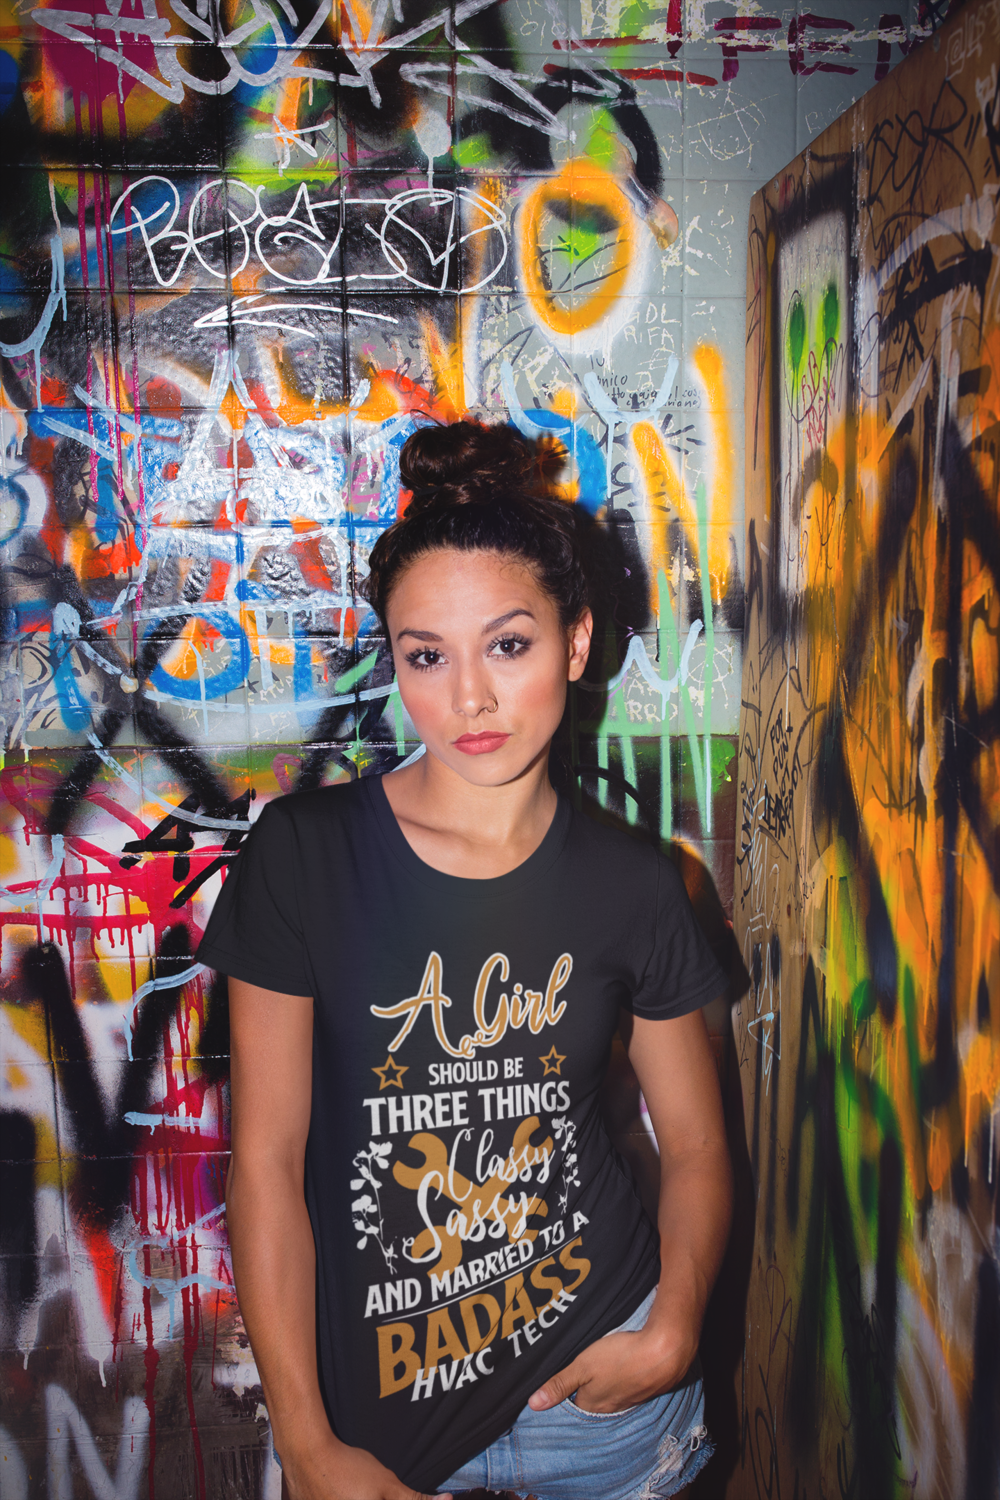 tshirt-mockup-of-a-girl-in-a-bathroom-with-graffiti-22279.png